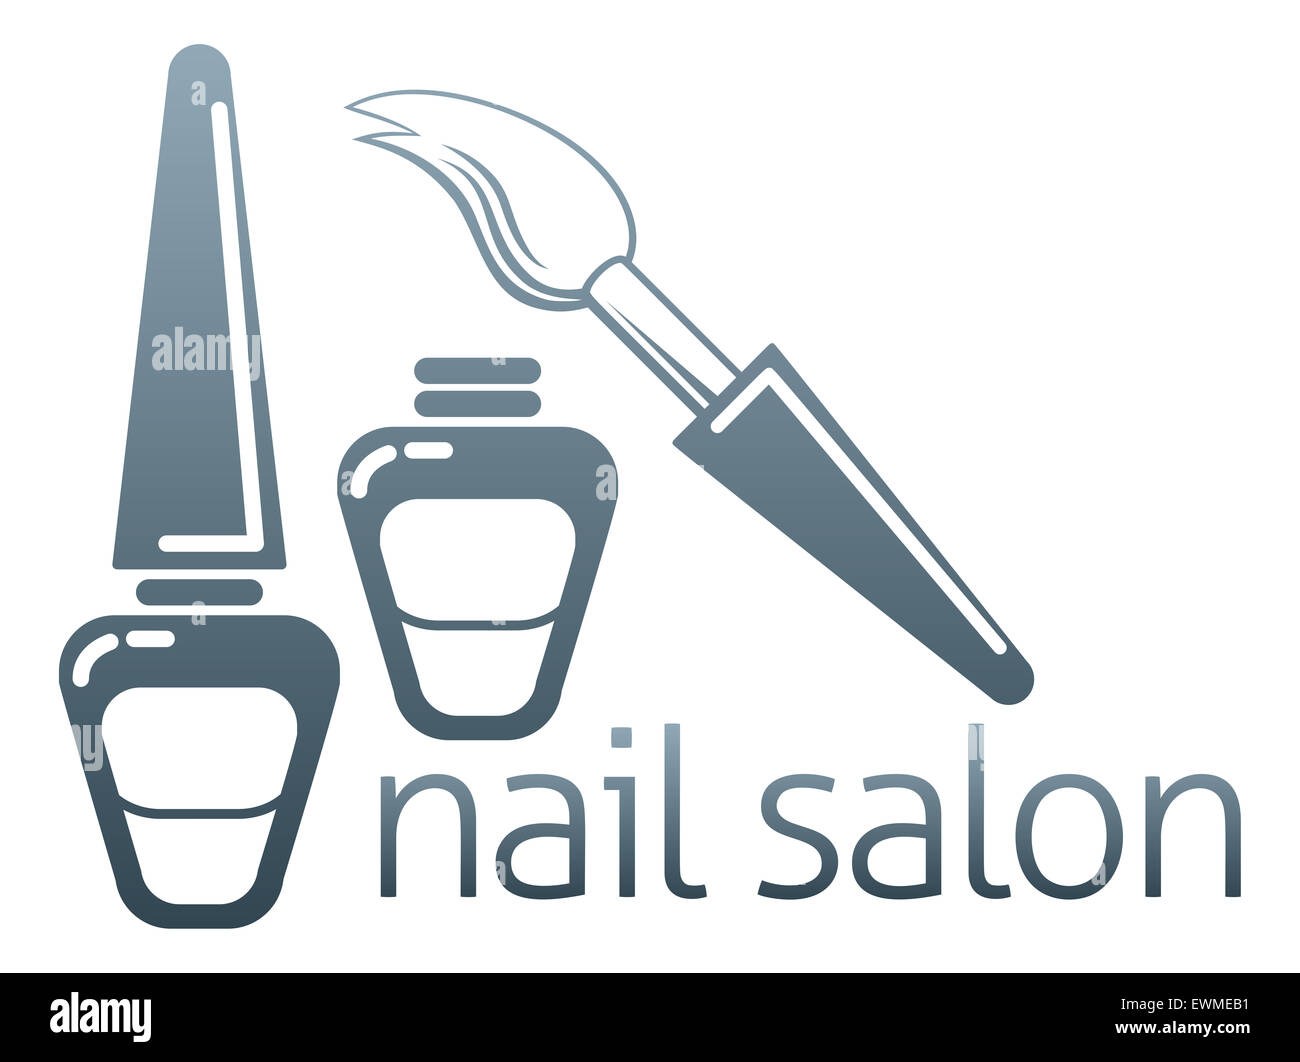 An illustration of bottles of nail varnish and brush, nail salon concept - Stock Image